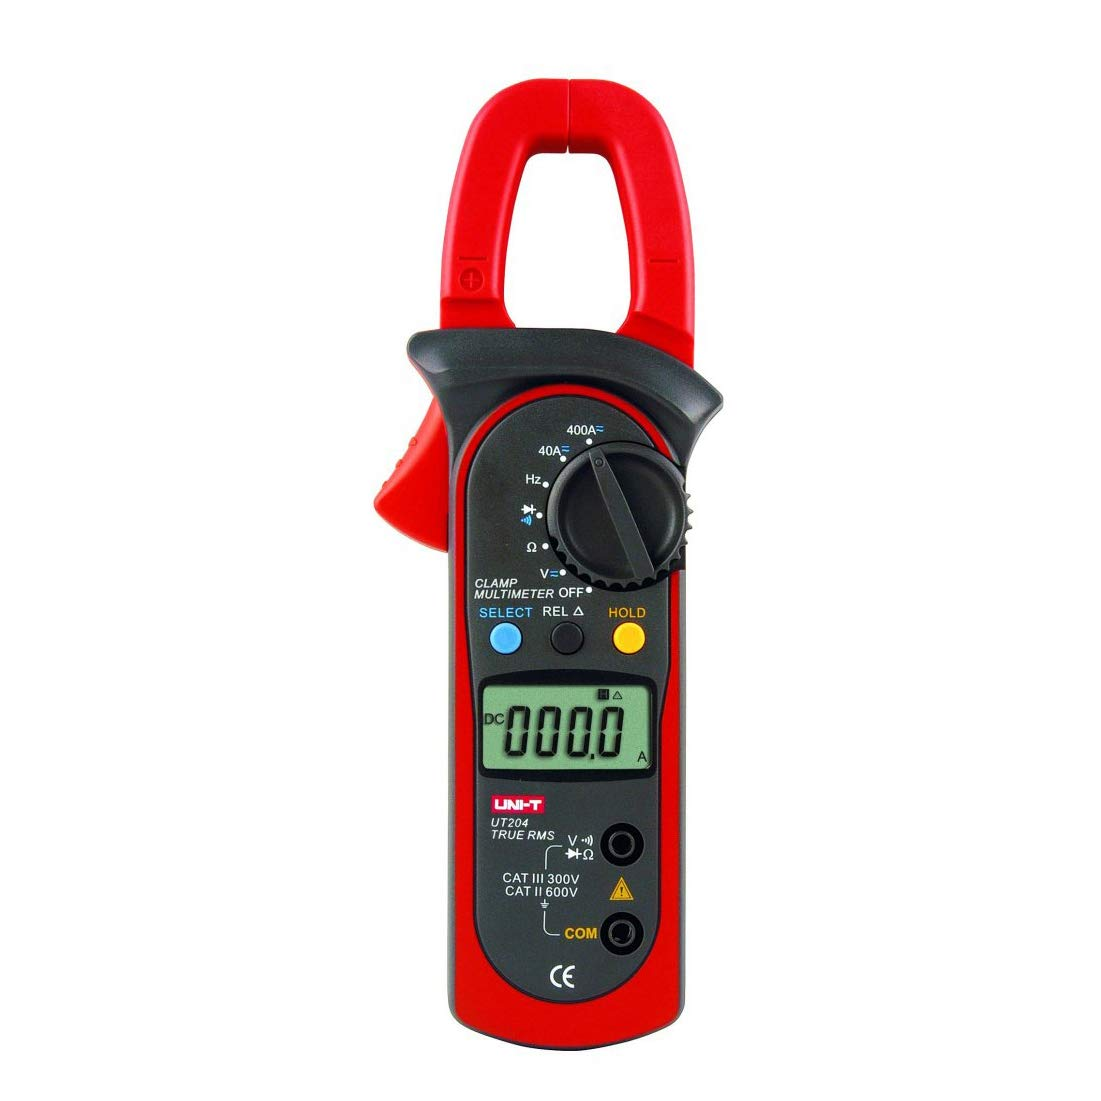 Uni-T UT204 Auto-Ranging AC DC Ture RMS Auto/Manual Range Digital Handheld Clamp Meter Multimeter Test Tool Sinometer